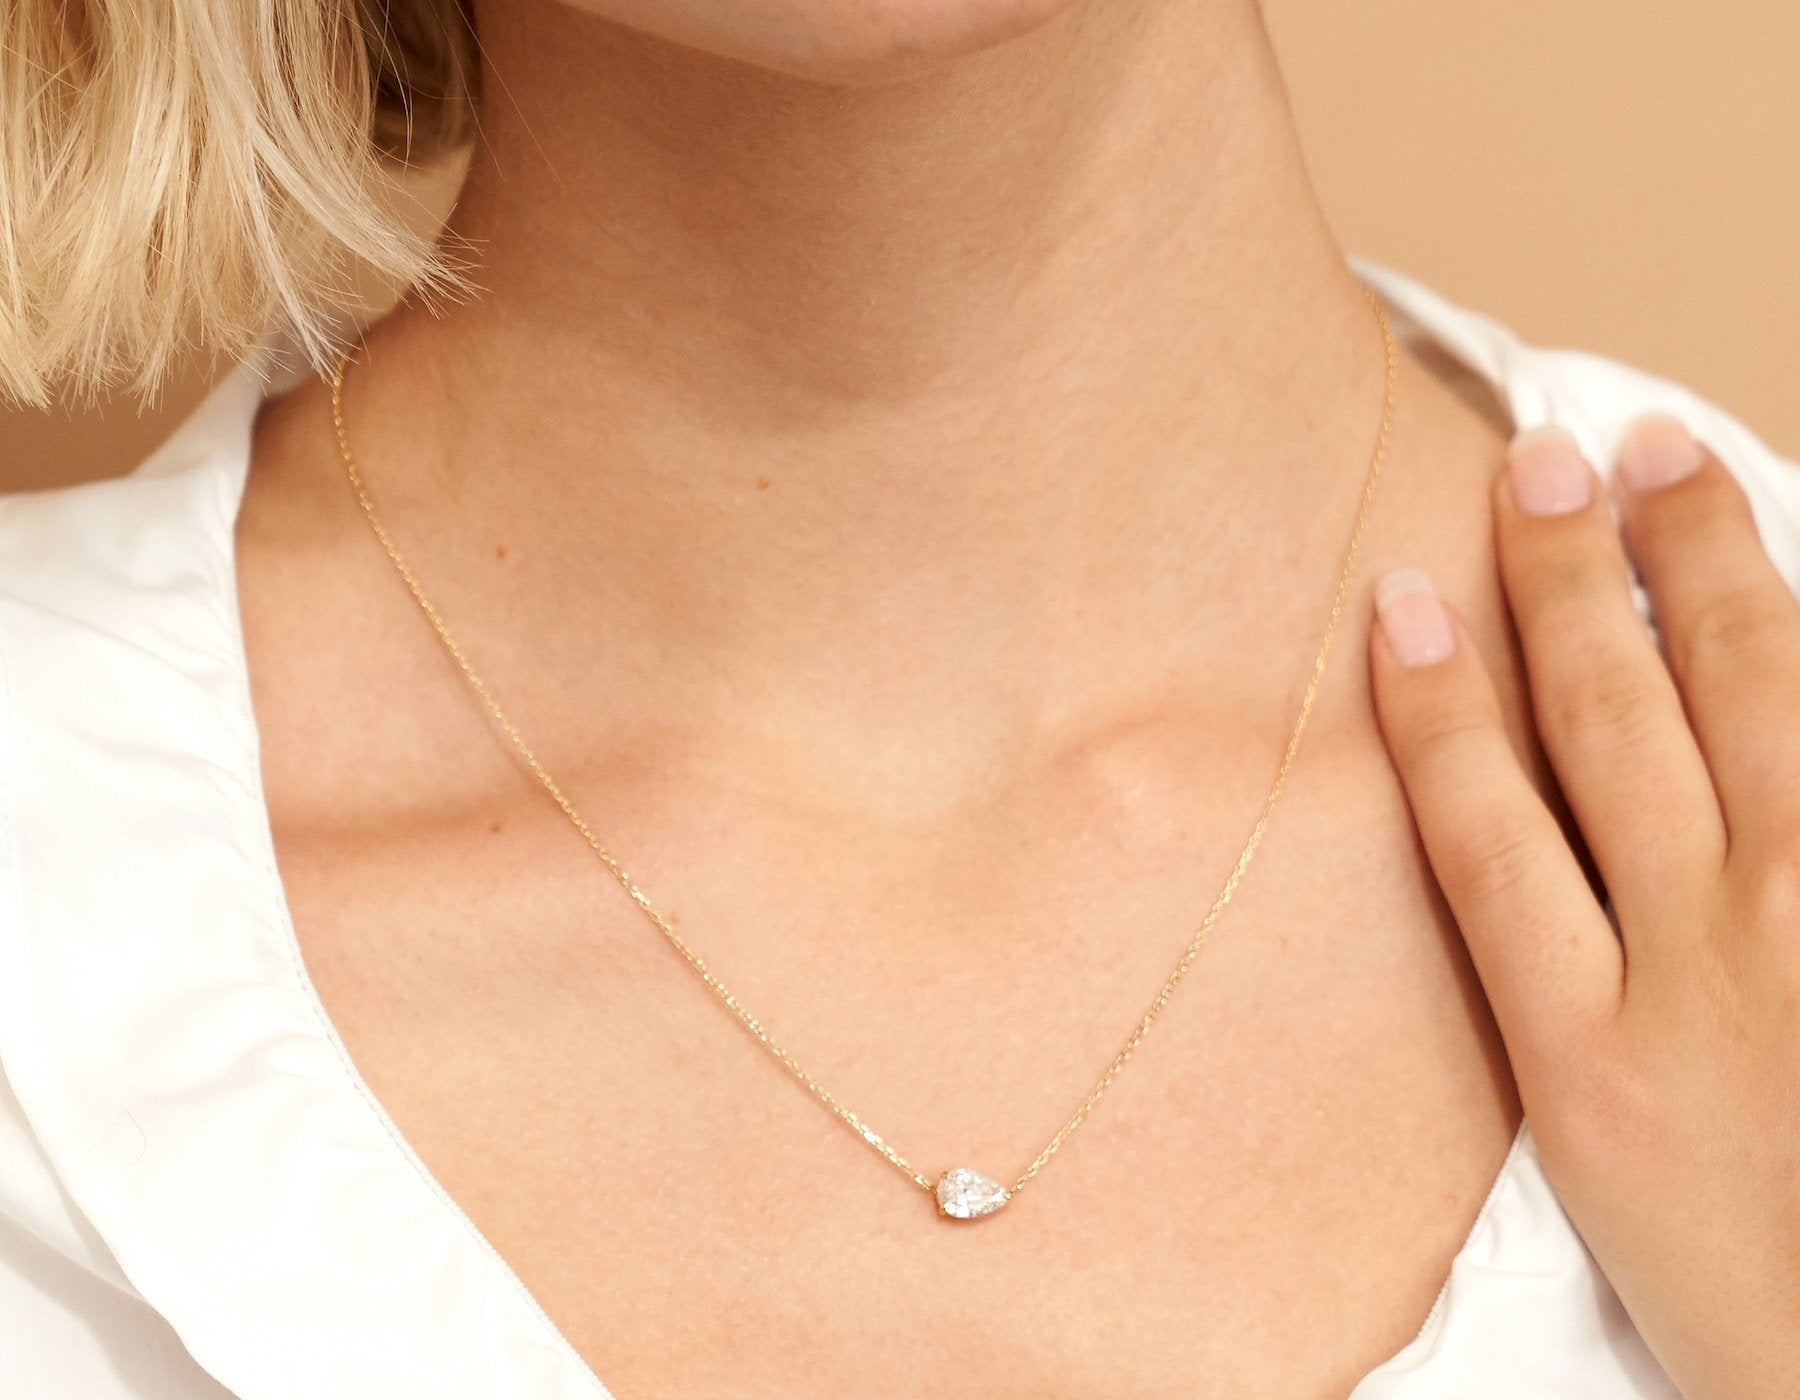 Model wearing Vrai 14K solid gold solitaire pear diamond necklace 1ct minimalist delicate, 14K Yellow Gold